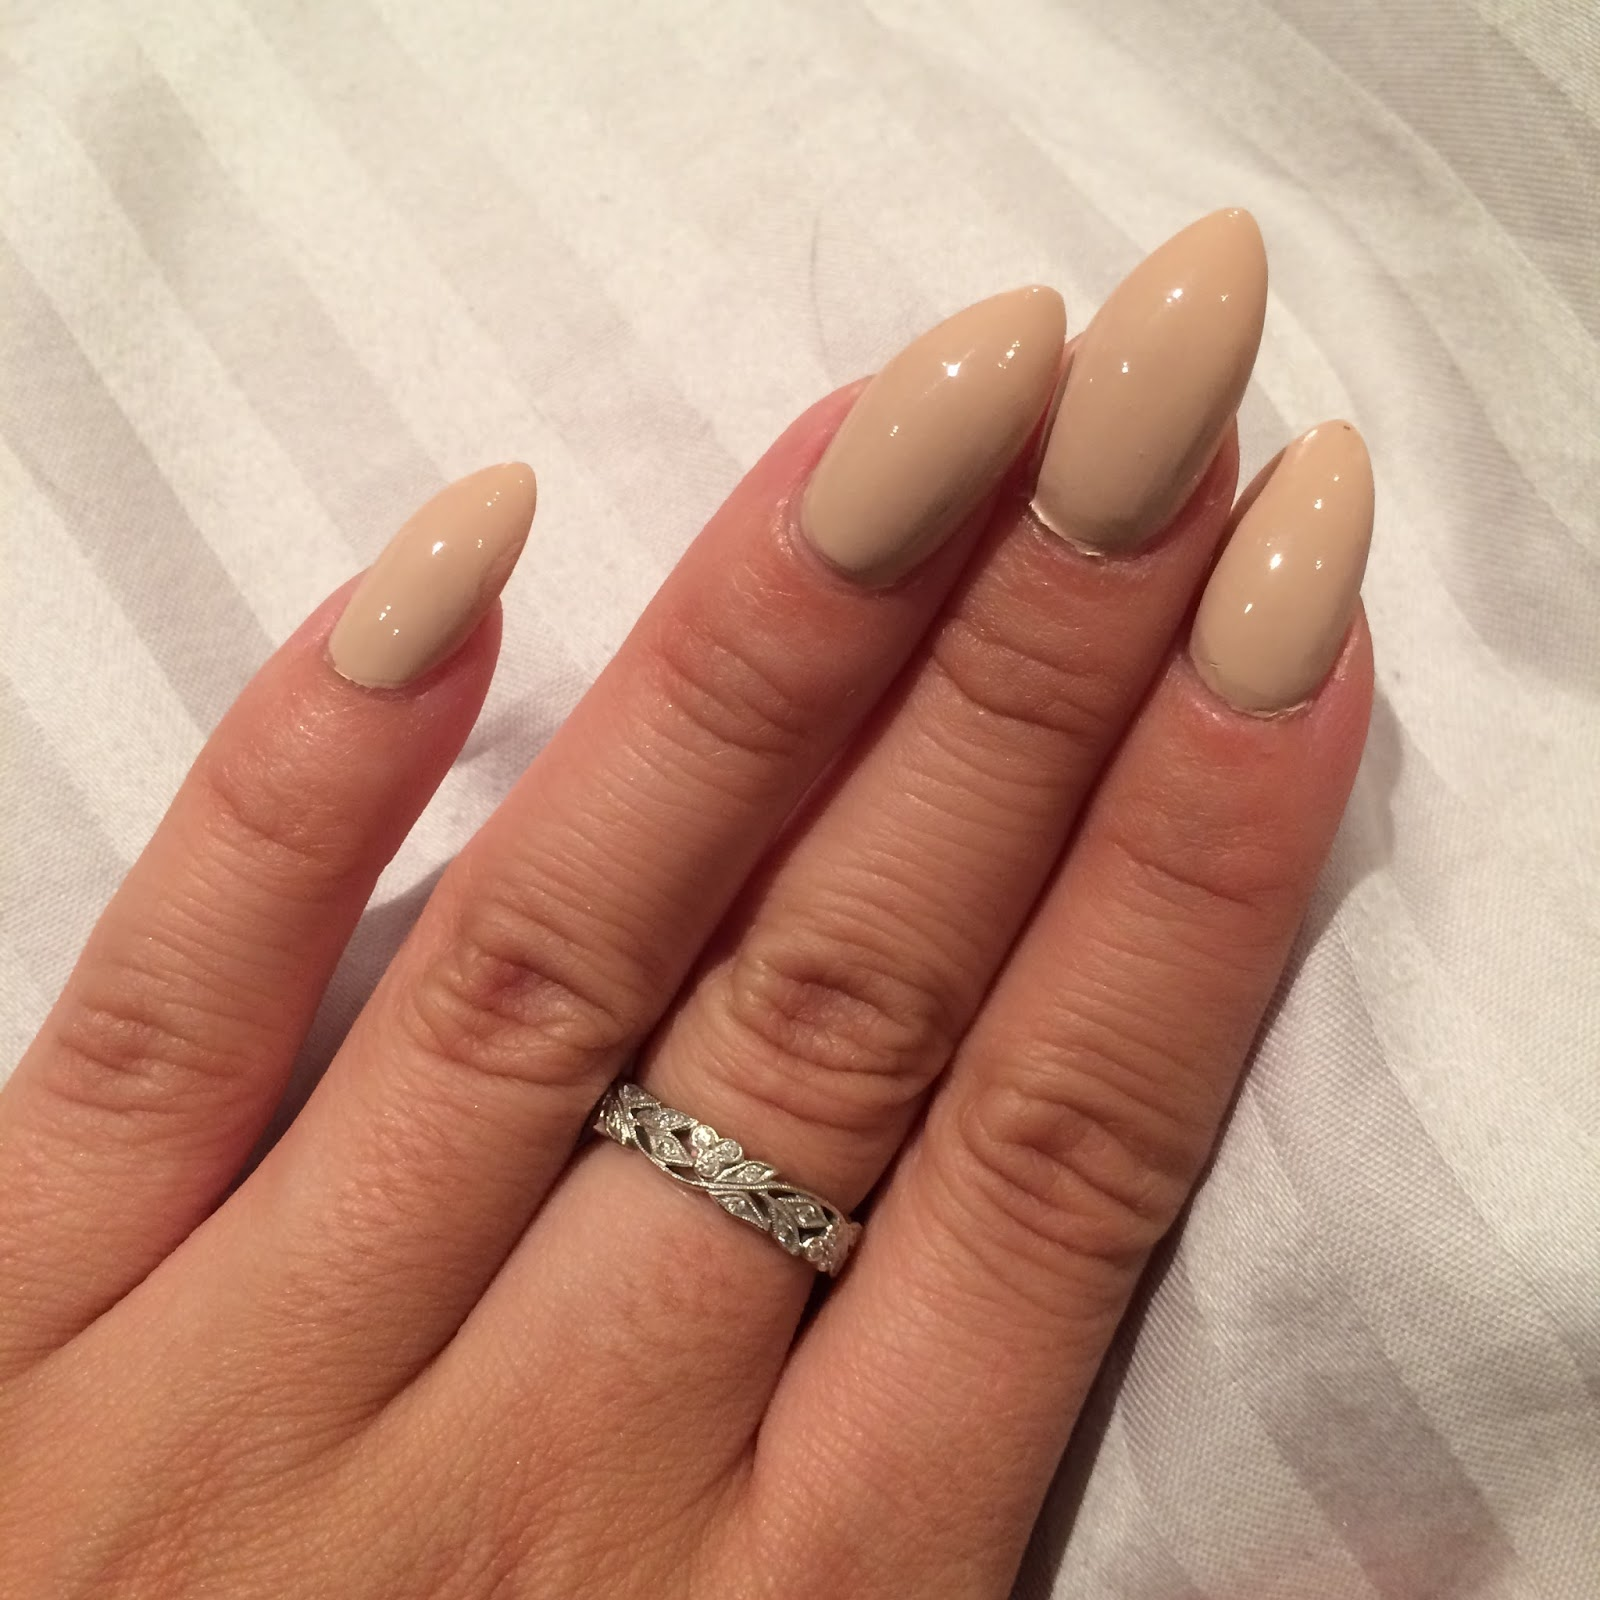 Life Without A Fun Sponge (LWFS): Getting Stiletto Nails